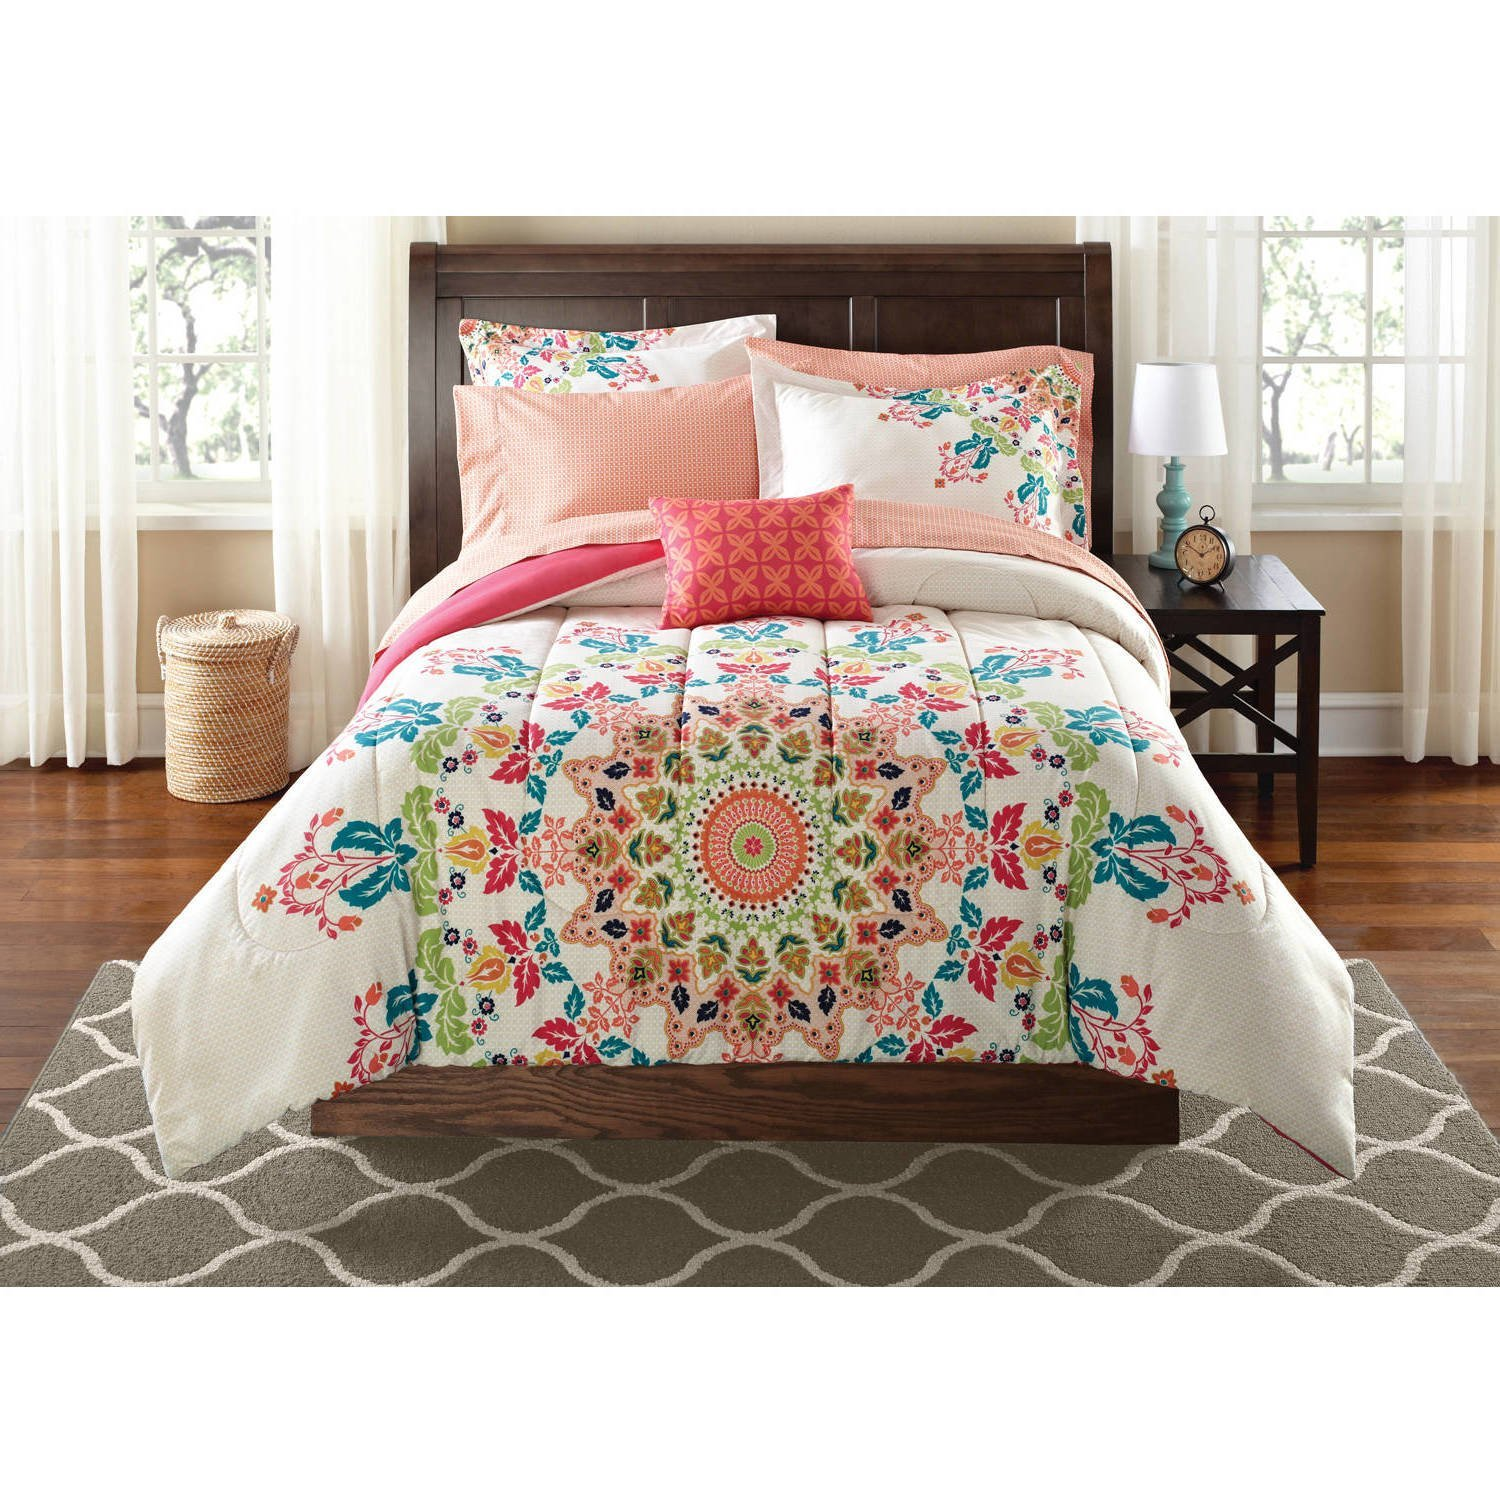 8 Piece Multi Color Medallion Pattern Comforter Set With Sheets Queen, Blue Green Rainbow Themed Light Pink Mandala Motif Floral, Reversible Coral Solid Kids Bedding, Polyester Microfiber